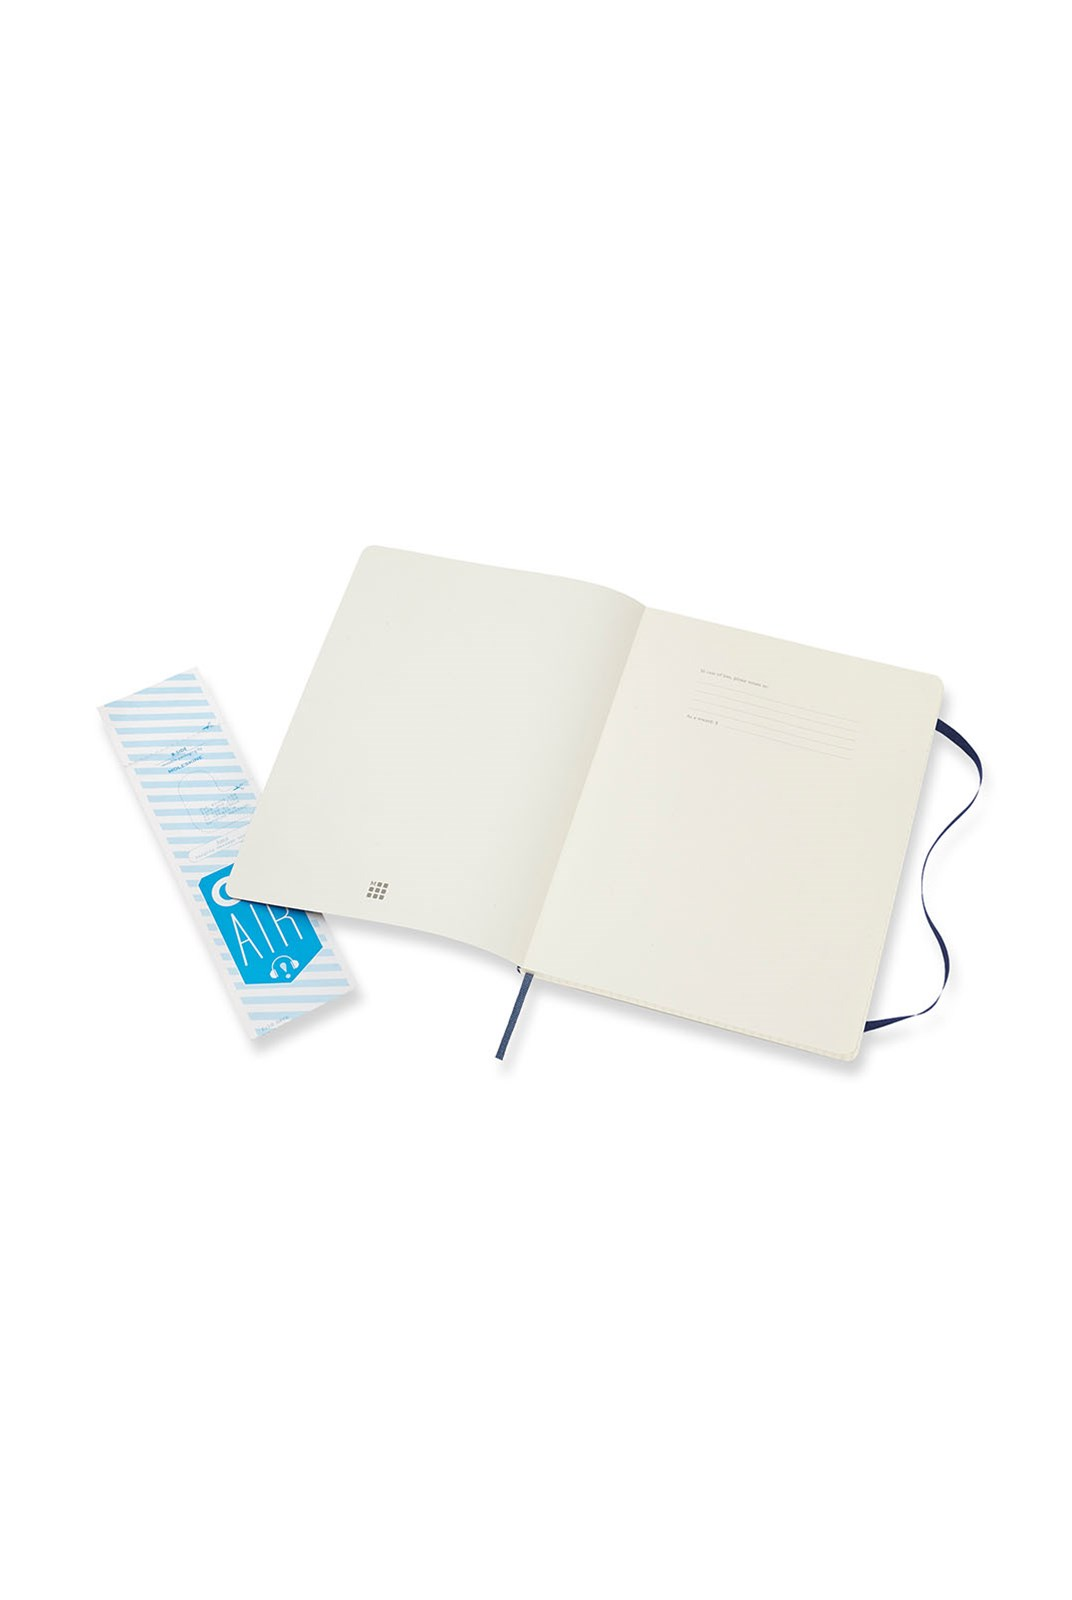 Moleskine - Classic Soft Cover Notebook - Grid - Extra Large - Sapphire Blue